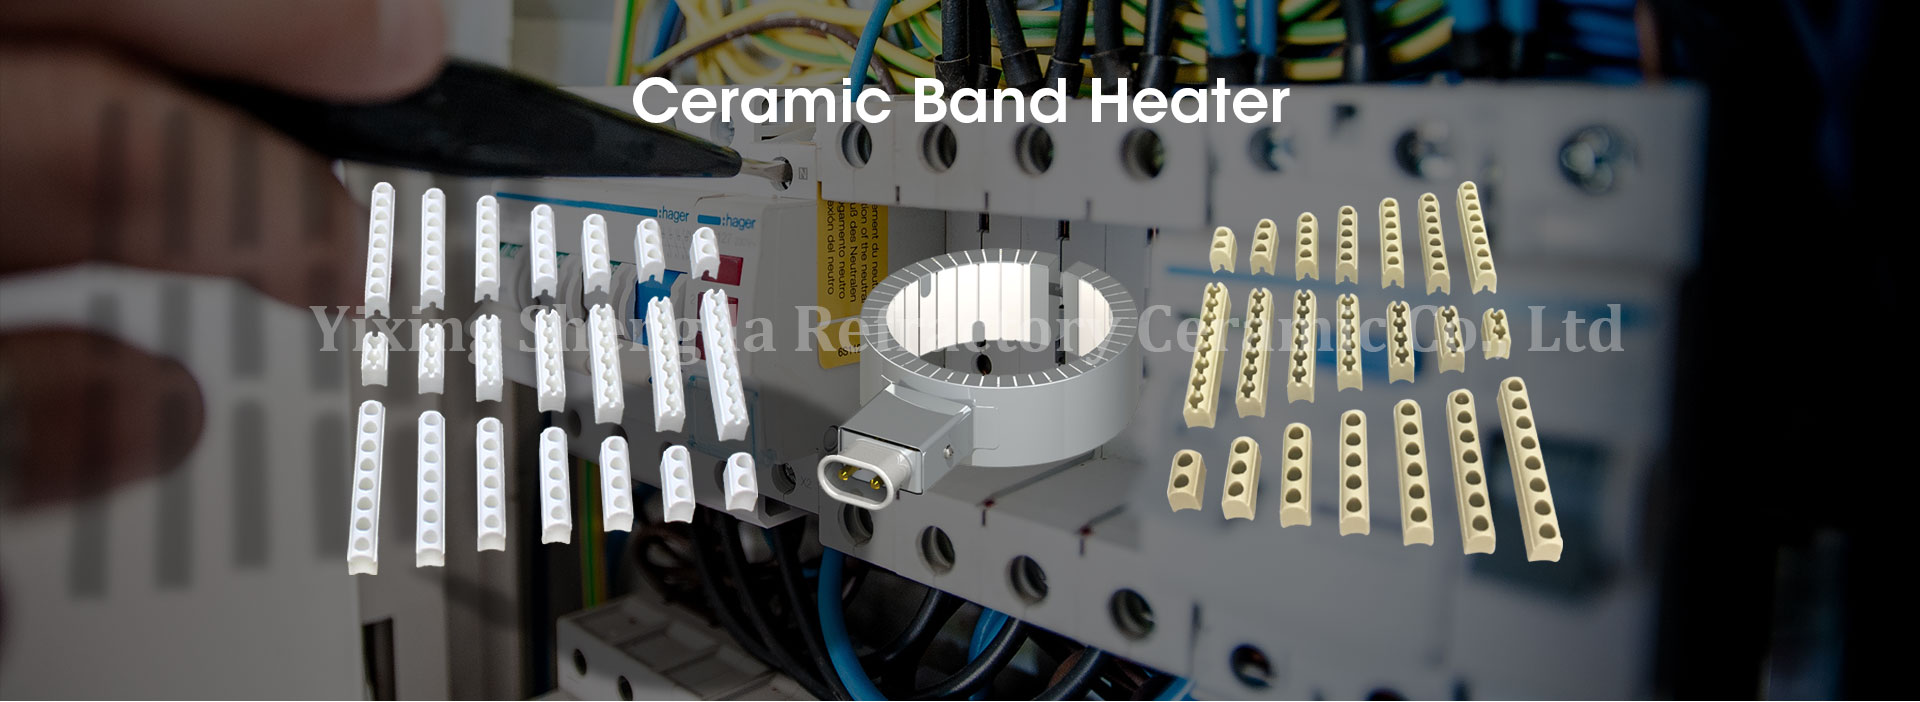 Ceramic Band Heater Insulator